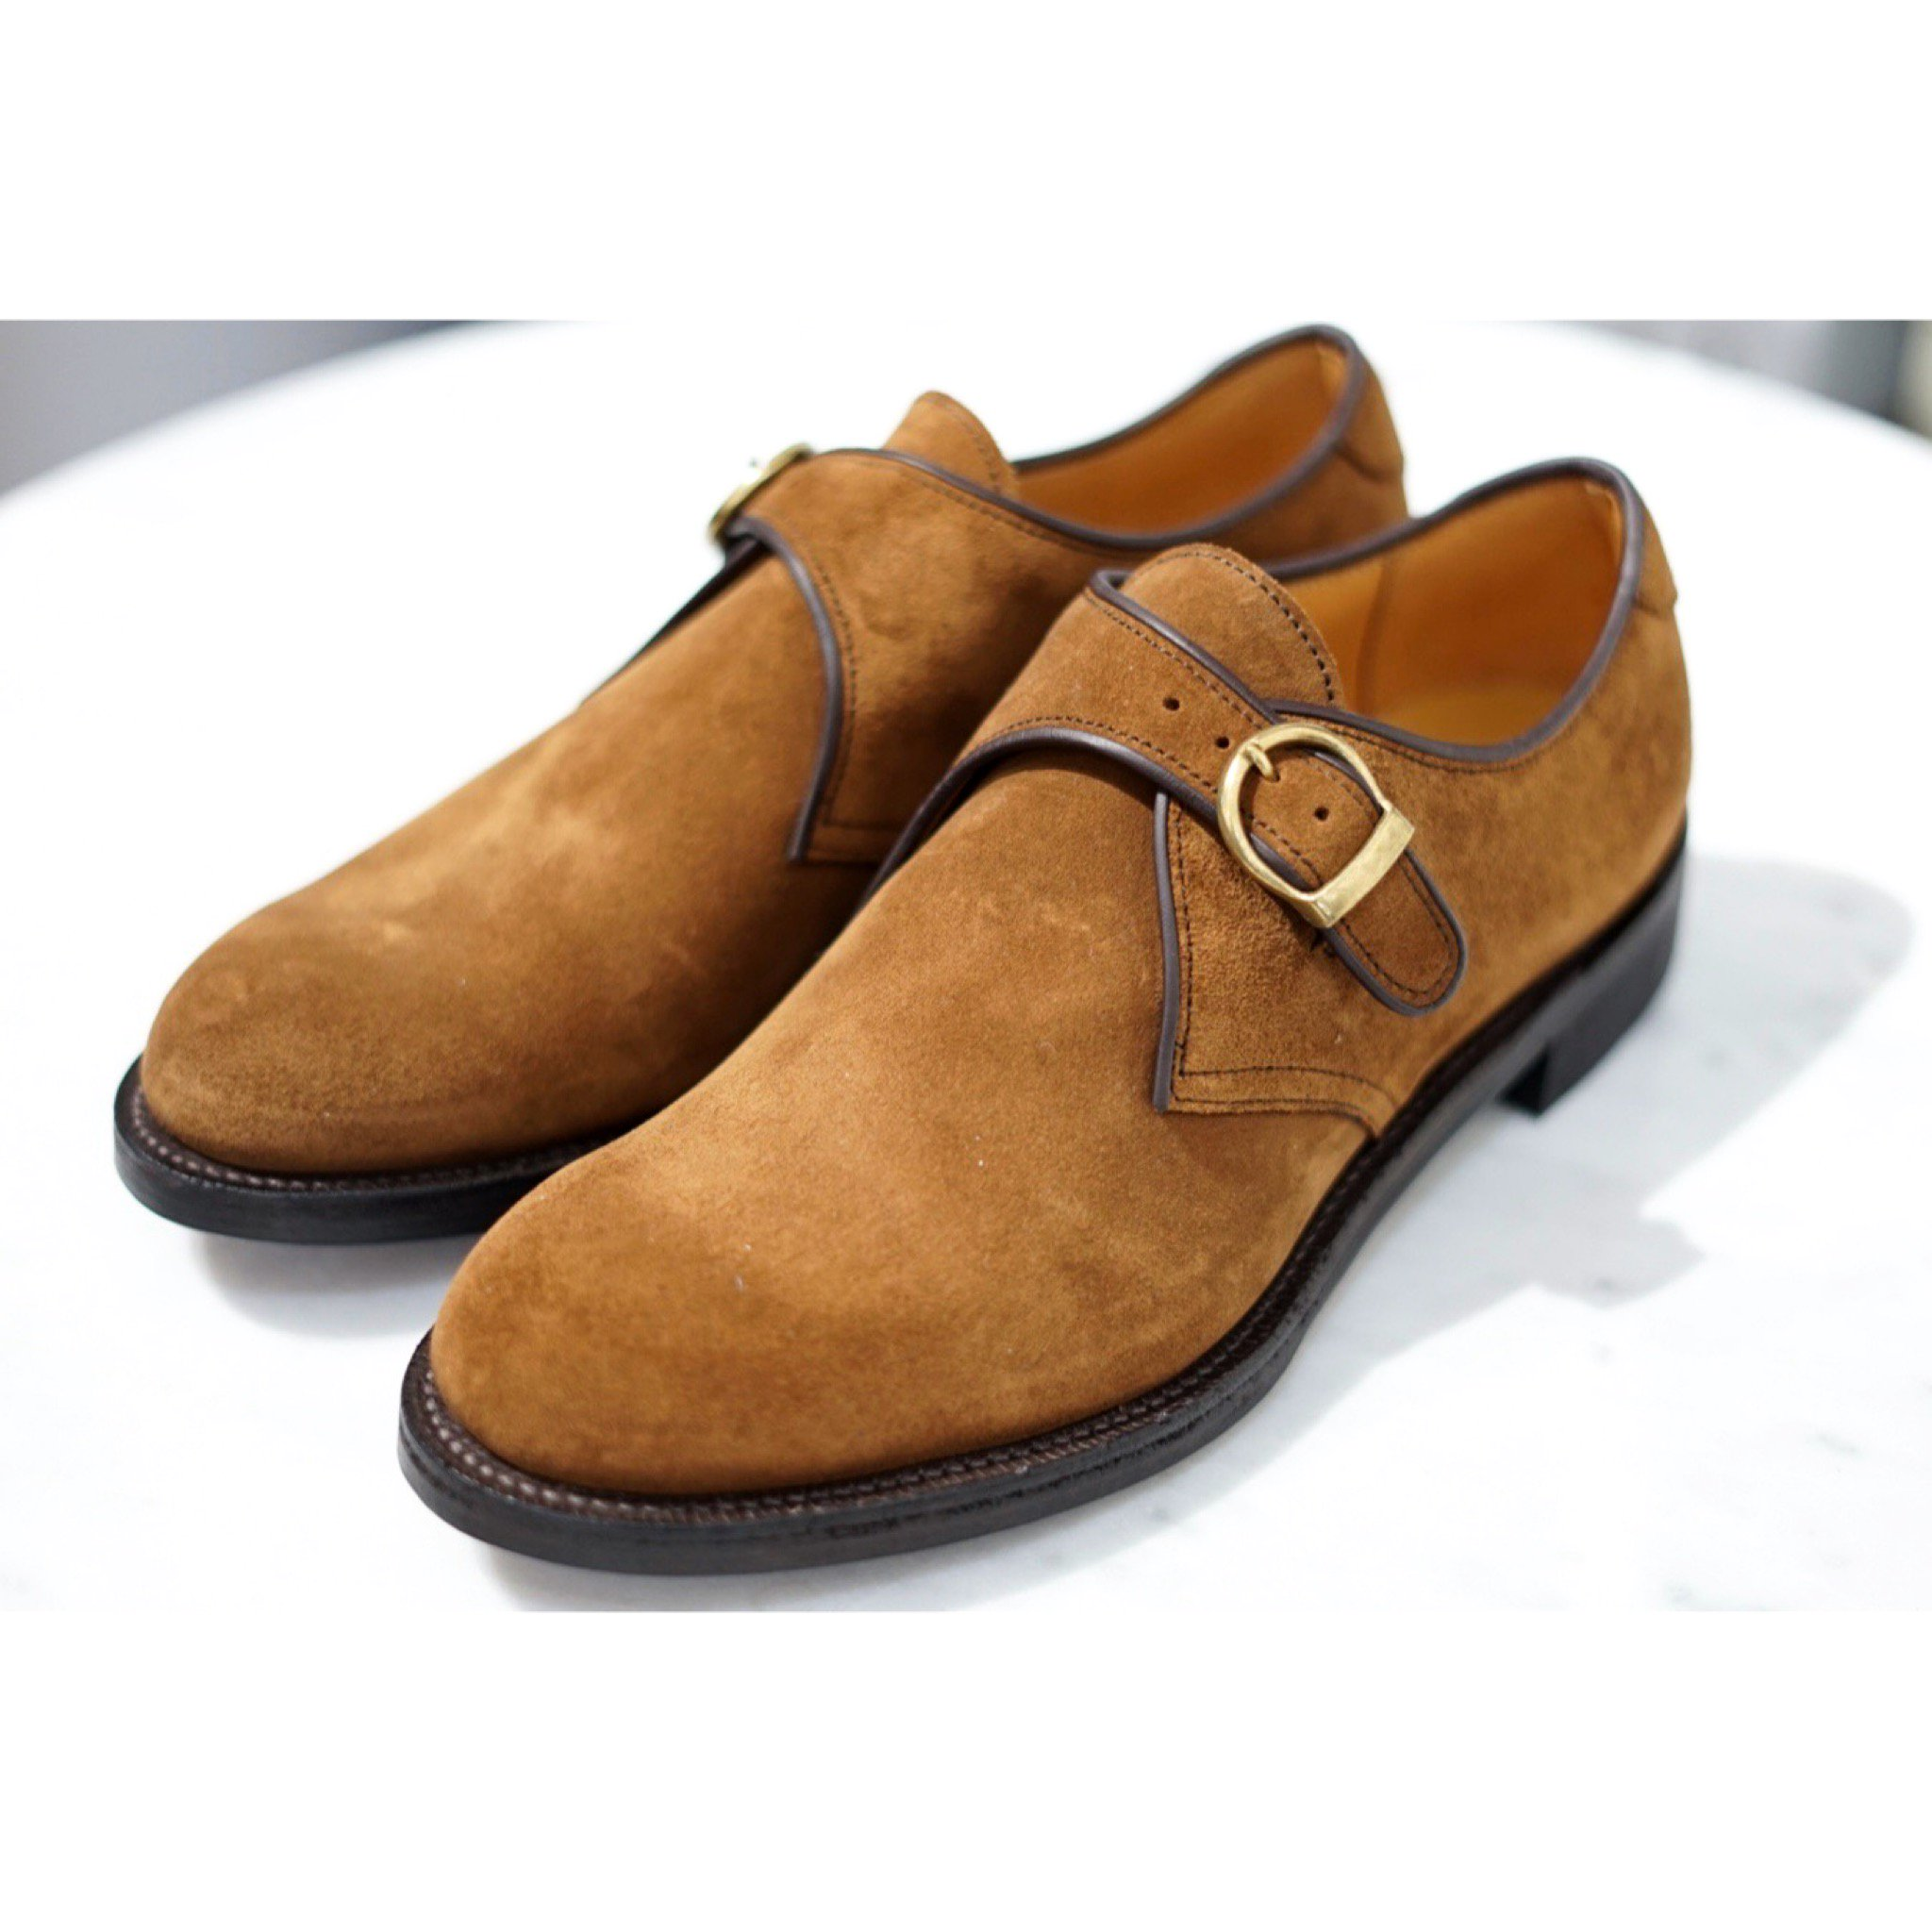 MAKERS-10th ANNIVERSARY SINGLE MONK STRAP SUEDE